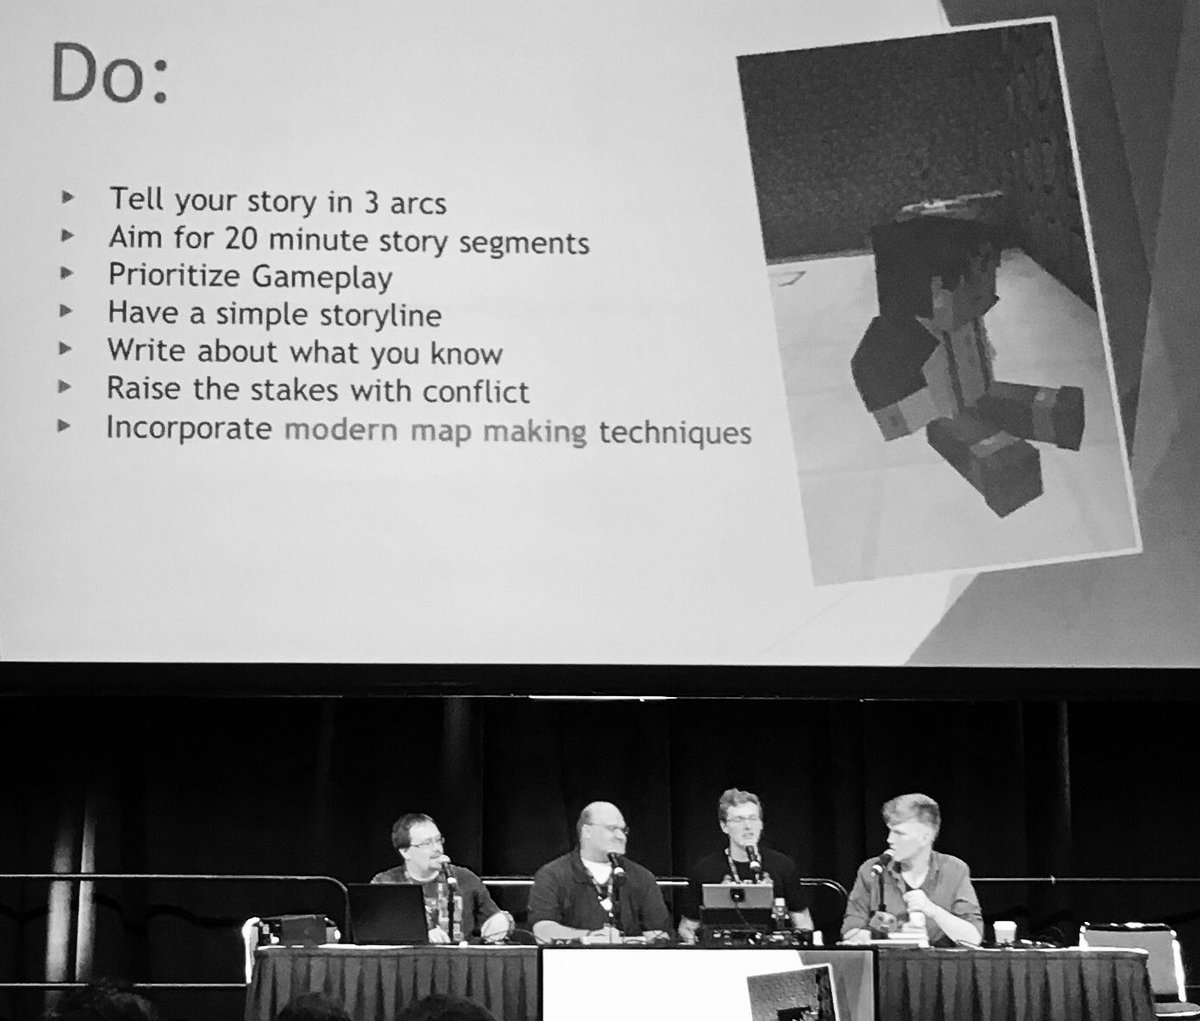 Do and Don't of Storytelling. #Minecon2016 Thanks! @Jigarbov @Rsmalec @CDFDMAN https://t.co/xFJhUQBK4S